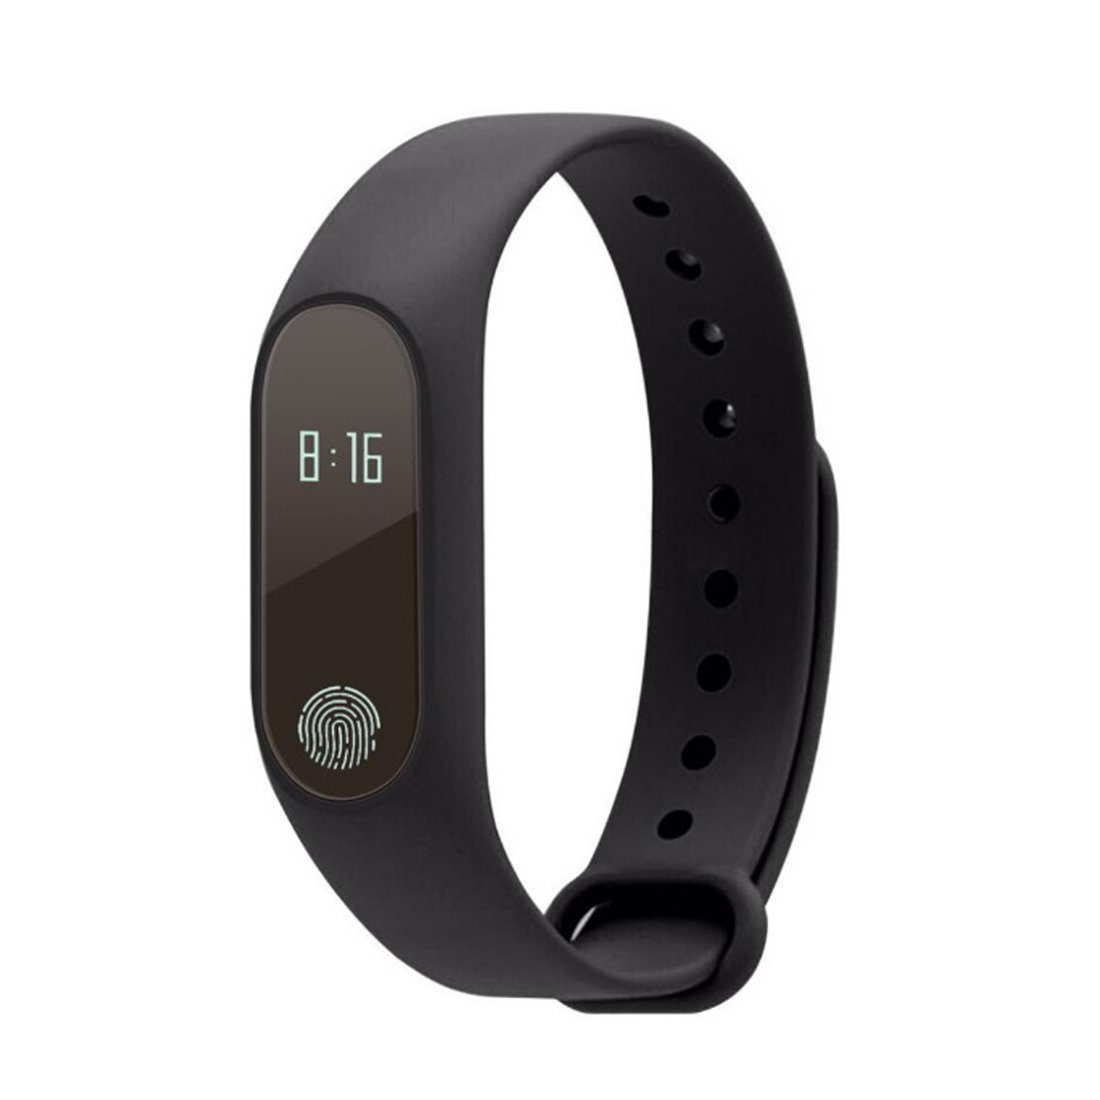 Smart Bracelet Running Sport Fitness WatchPedometerSleep MonitorOLED Touchpad Heart Rate MonitorCalorie CounterWaterproof Touch Screen Bluetooth WatchFor Android IOSFor Business Man Woman Kids